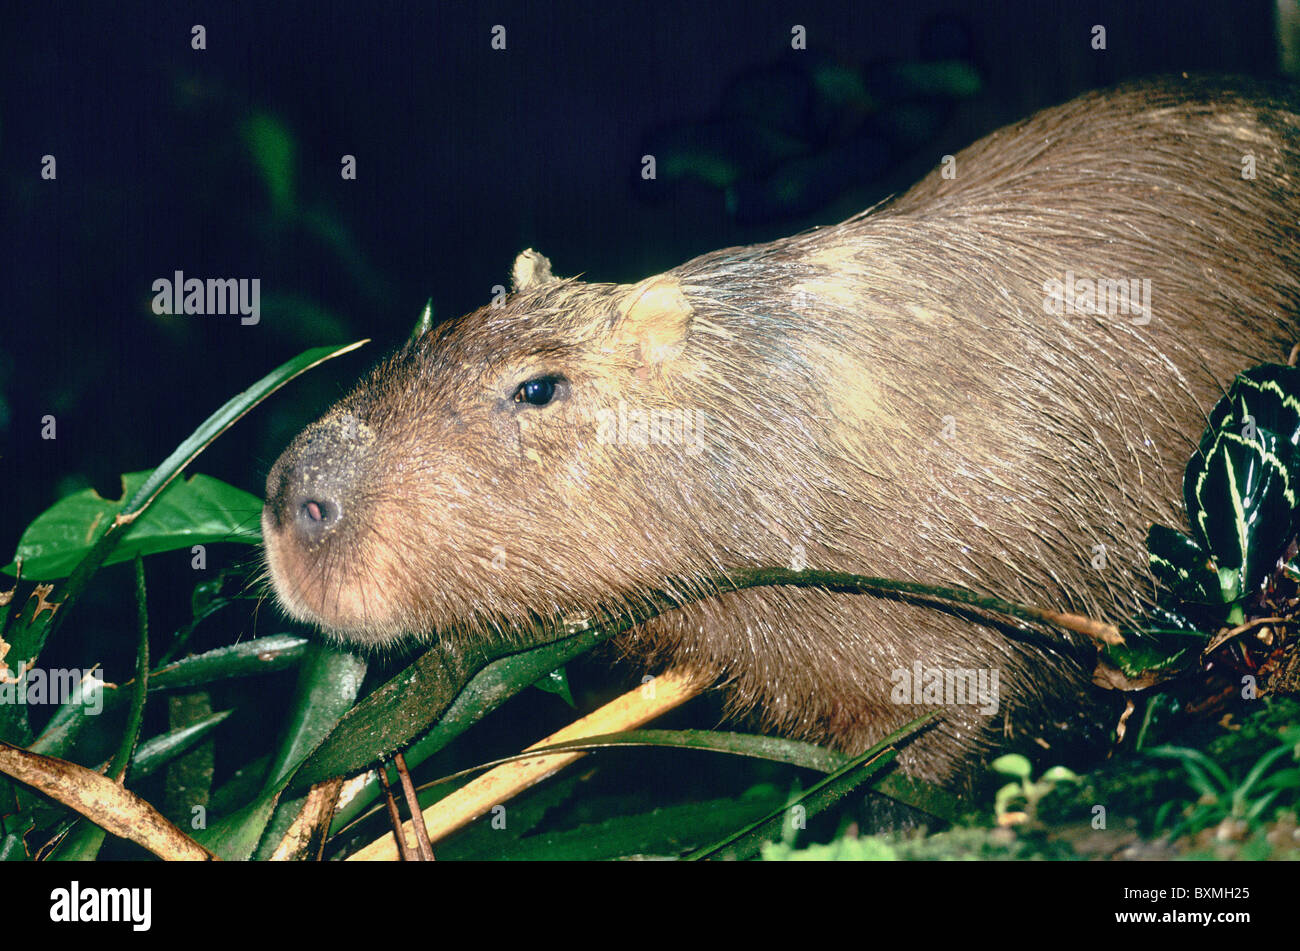 Capybara feeding, browsing, - Stock Image